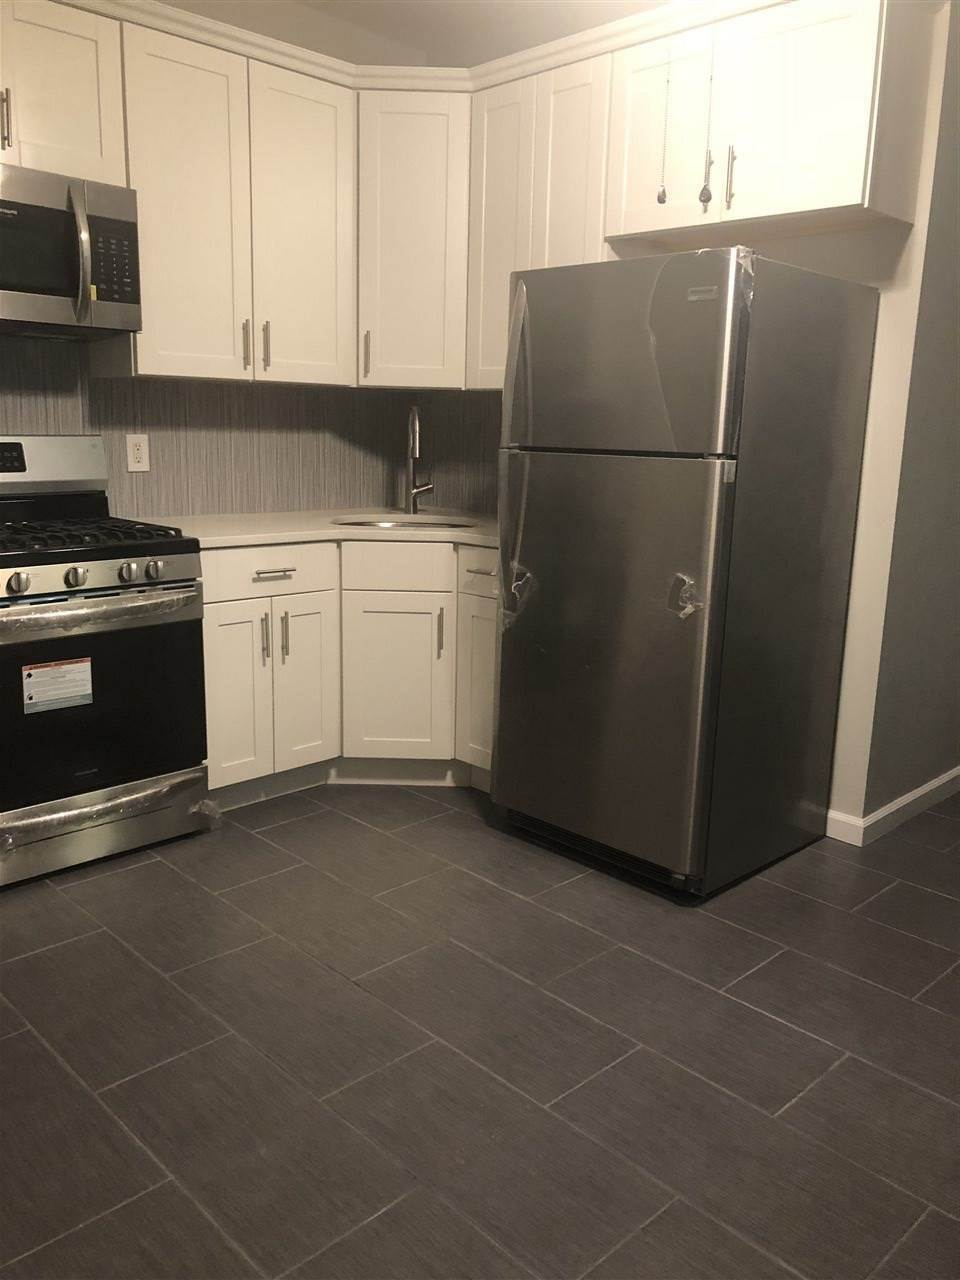 3. Residential for Rent at 595-597 Kennedy Boulevard #3 Bayonne, New Jersey 07002 United States